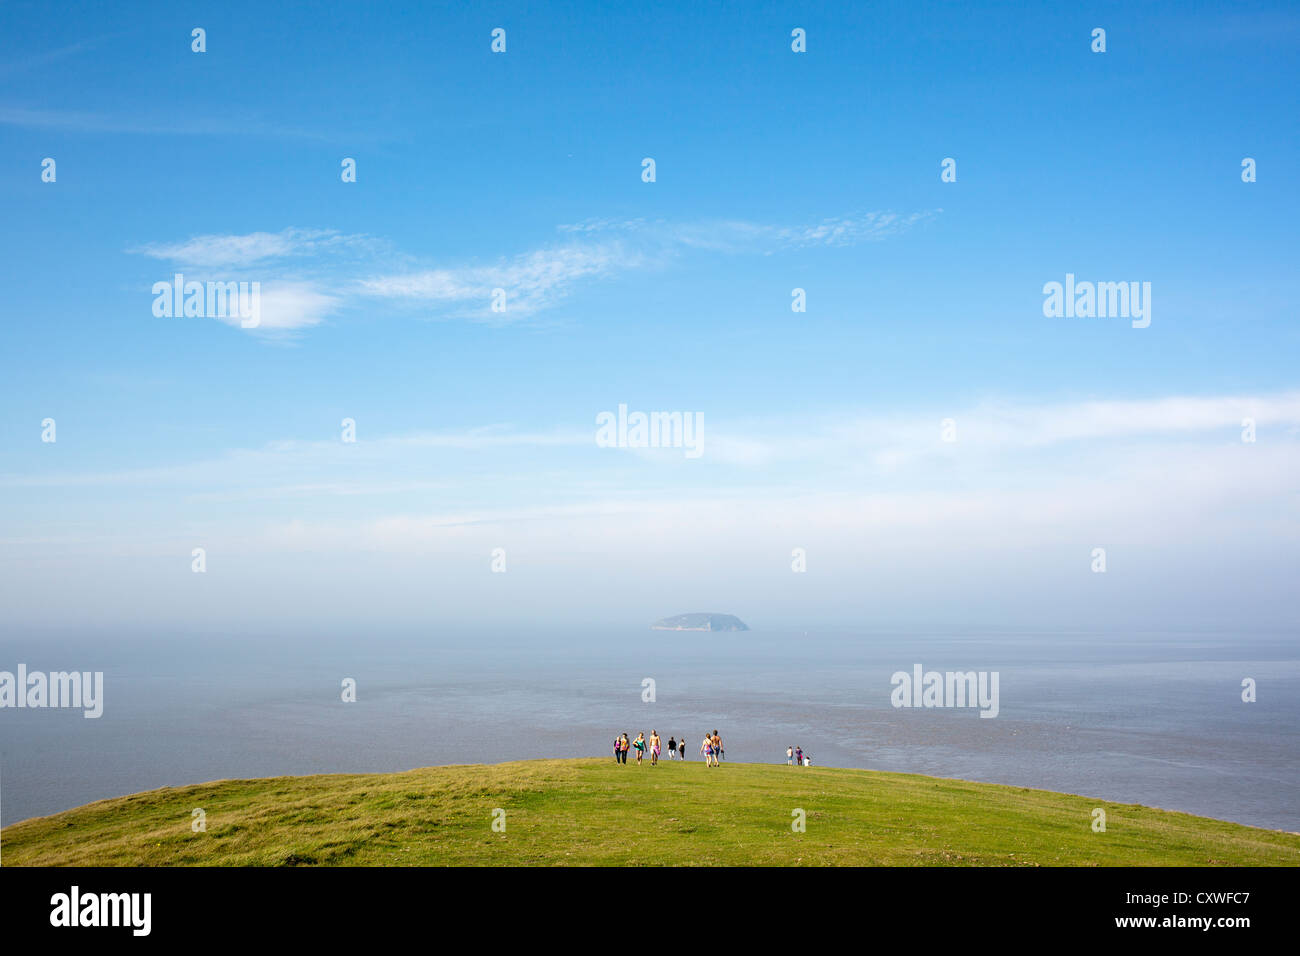 View from cliff edge over Bristol Channel onto Steep Holm Island at Brean Down, Somerset, England Stock Photo